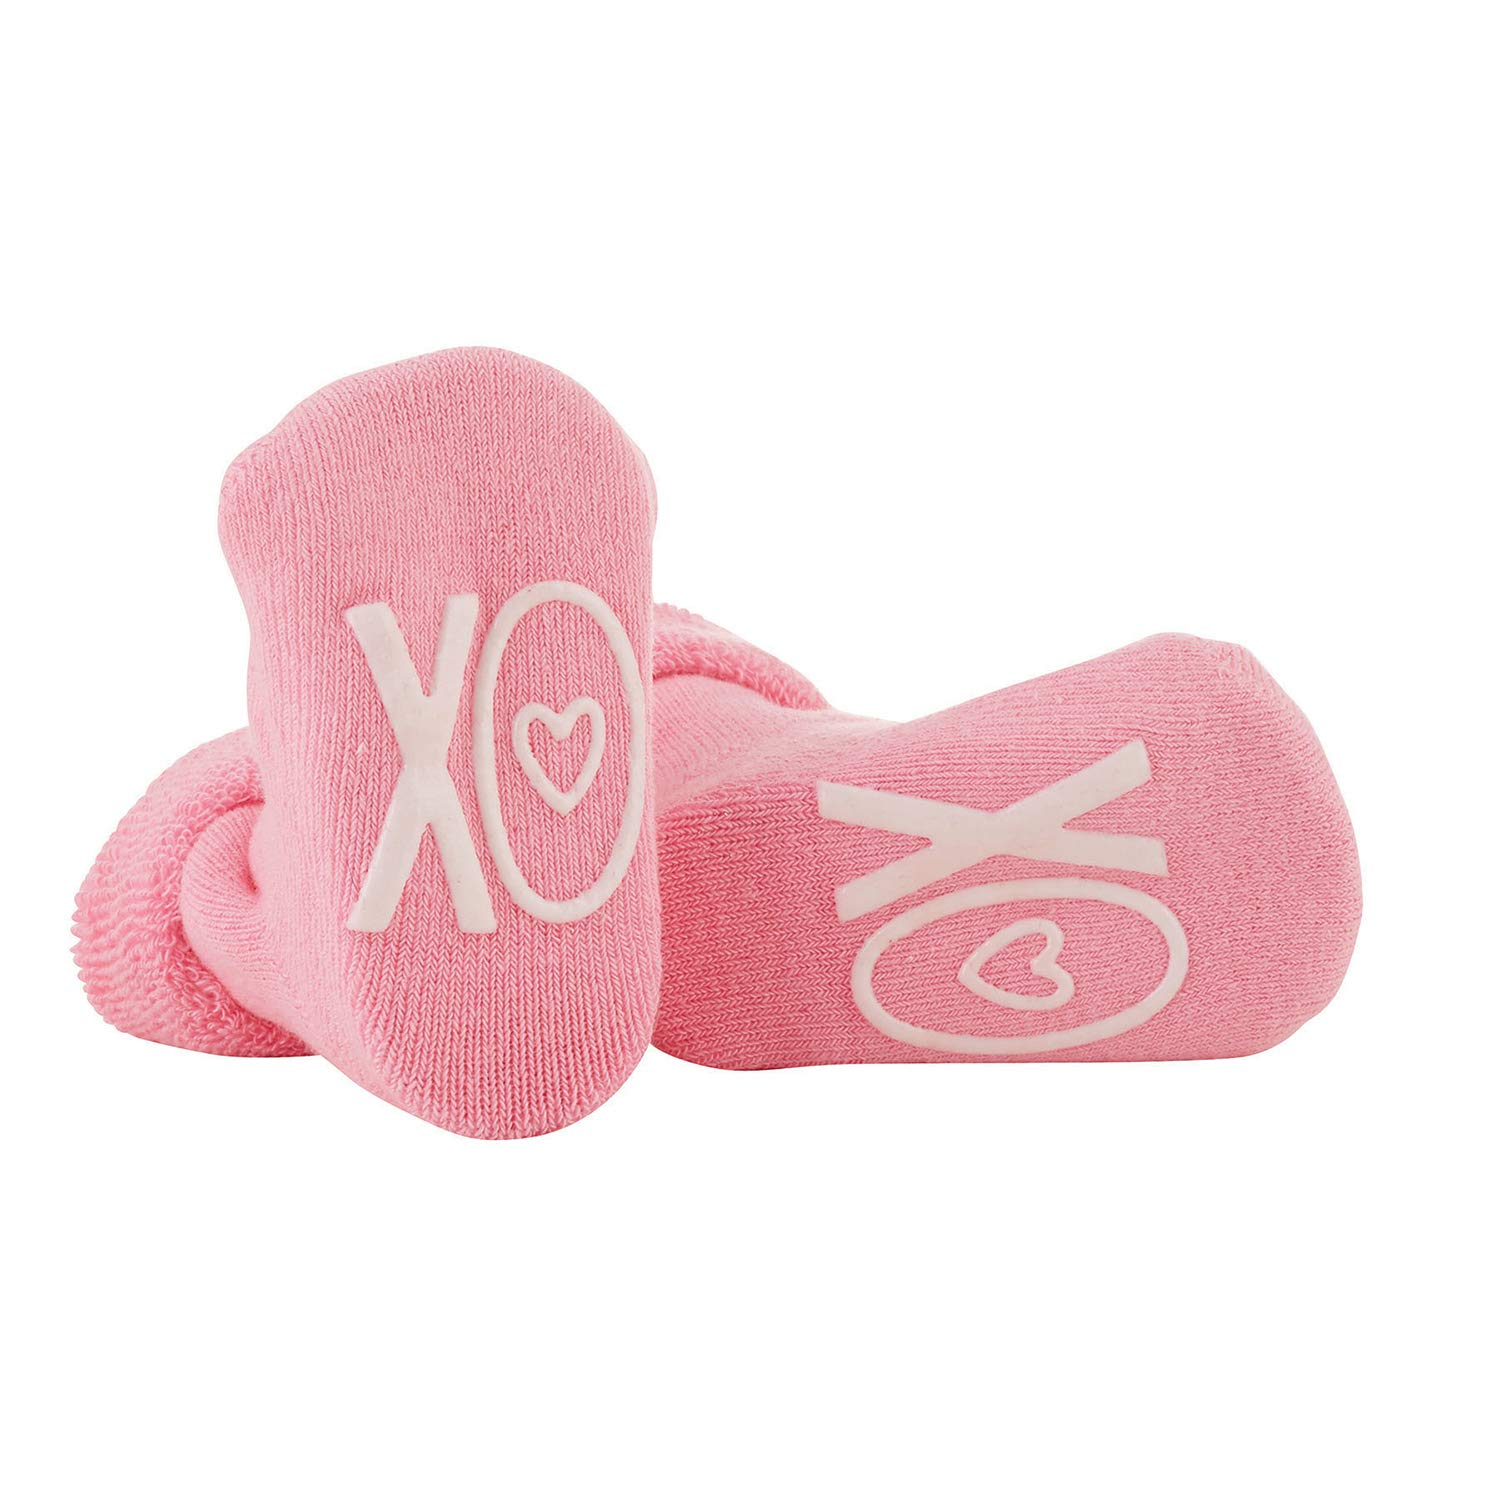 Stephan Baby Non-Skid Silly Socks with Cute Sayings, Valentine's Day, XOXO, Fits 3-12 Months